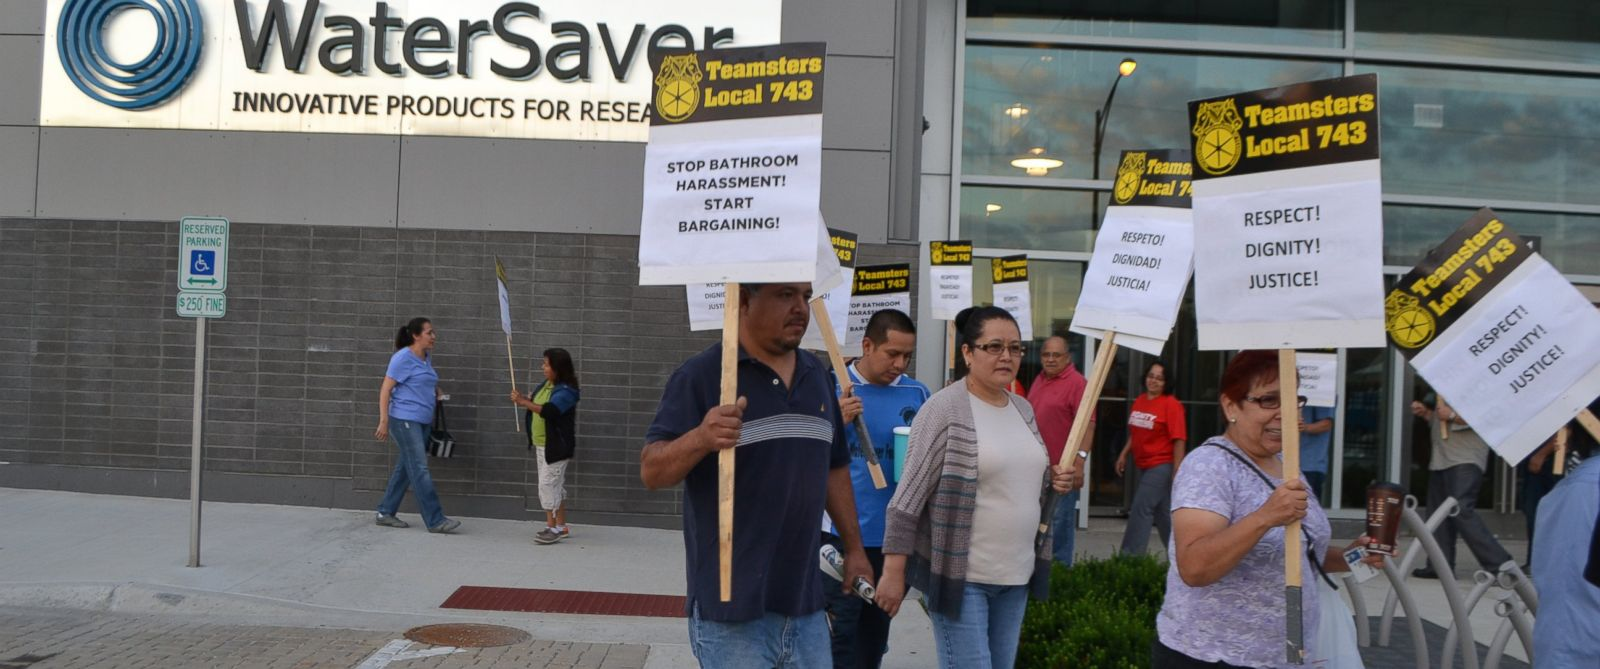 """PHOTO: Members of the Teamsters Local 743 chapter participate in a """"Stop Bathroom Harassment, Start Bargaining"""" rally in front faucet maker WaterSaver in Chicago."""